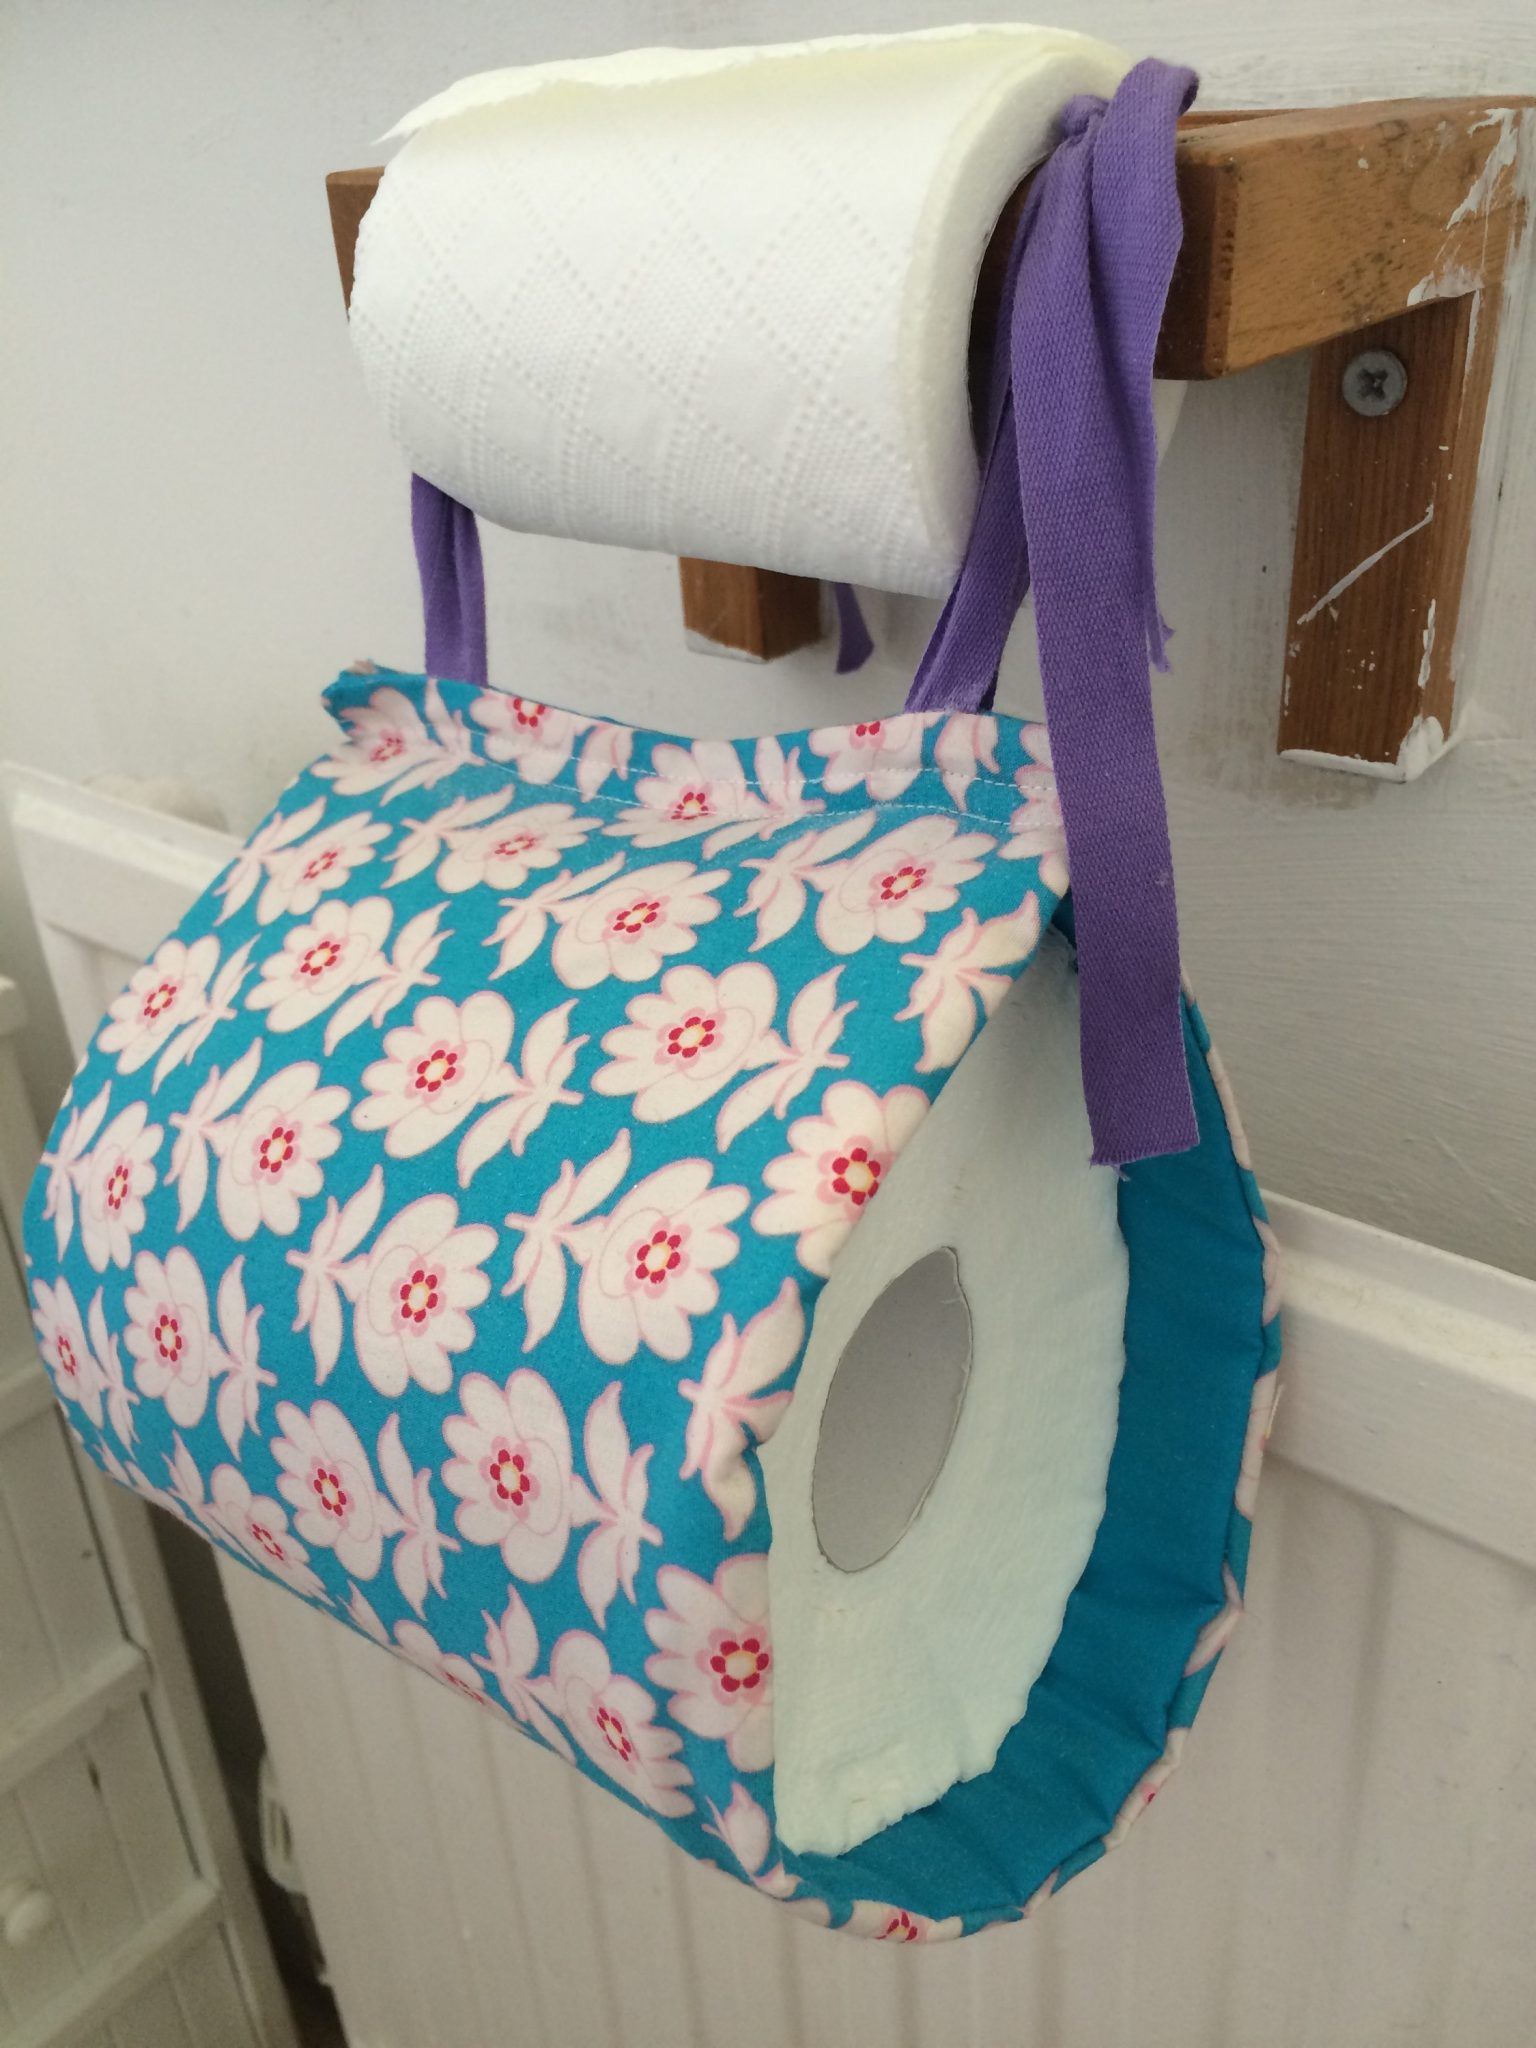 How to sew a toilet roll holder